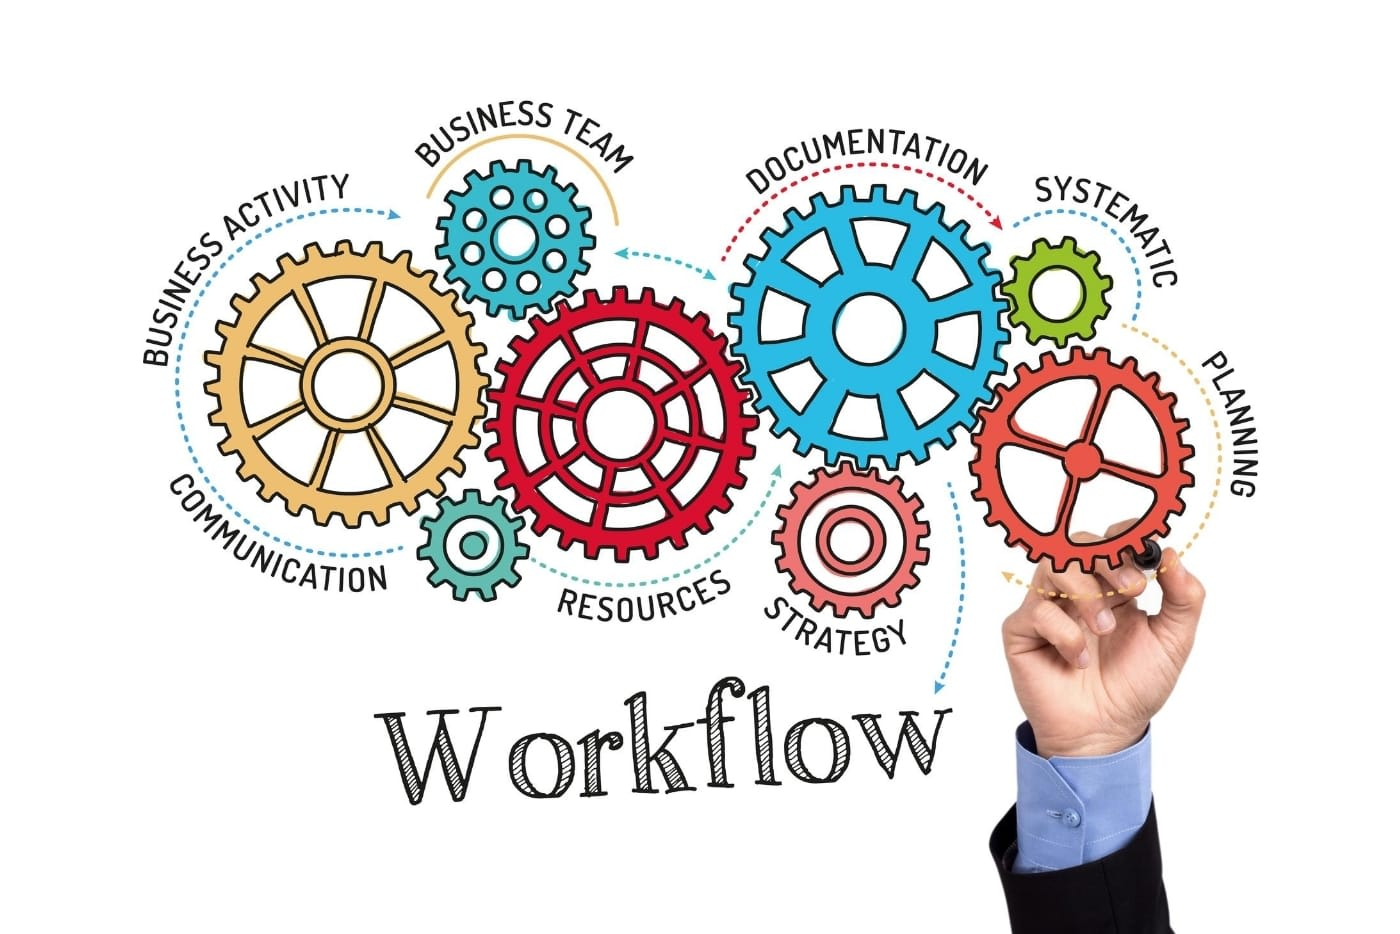 What is a Workflow Engine and why is important for business